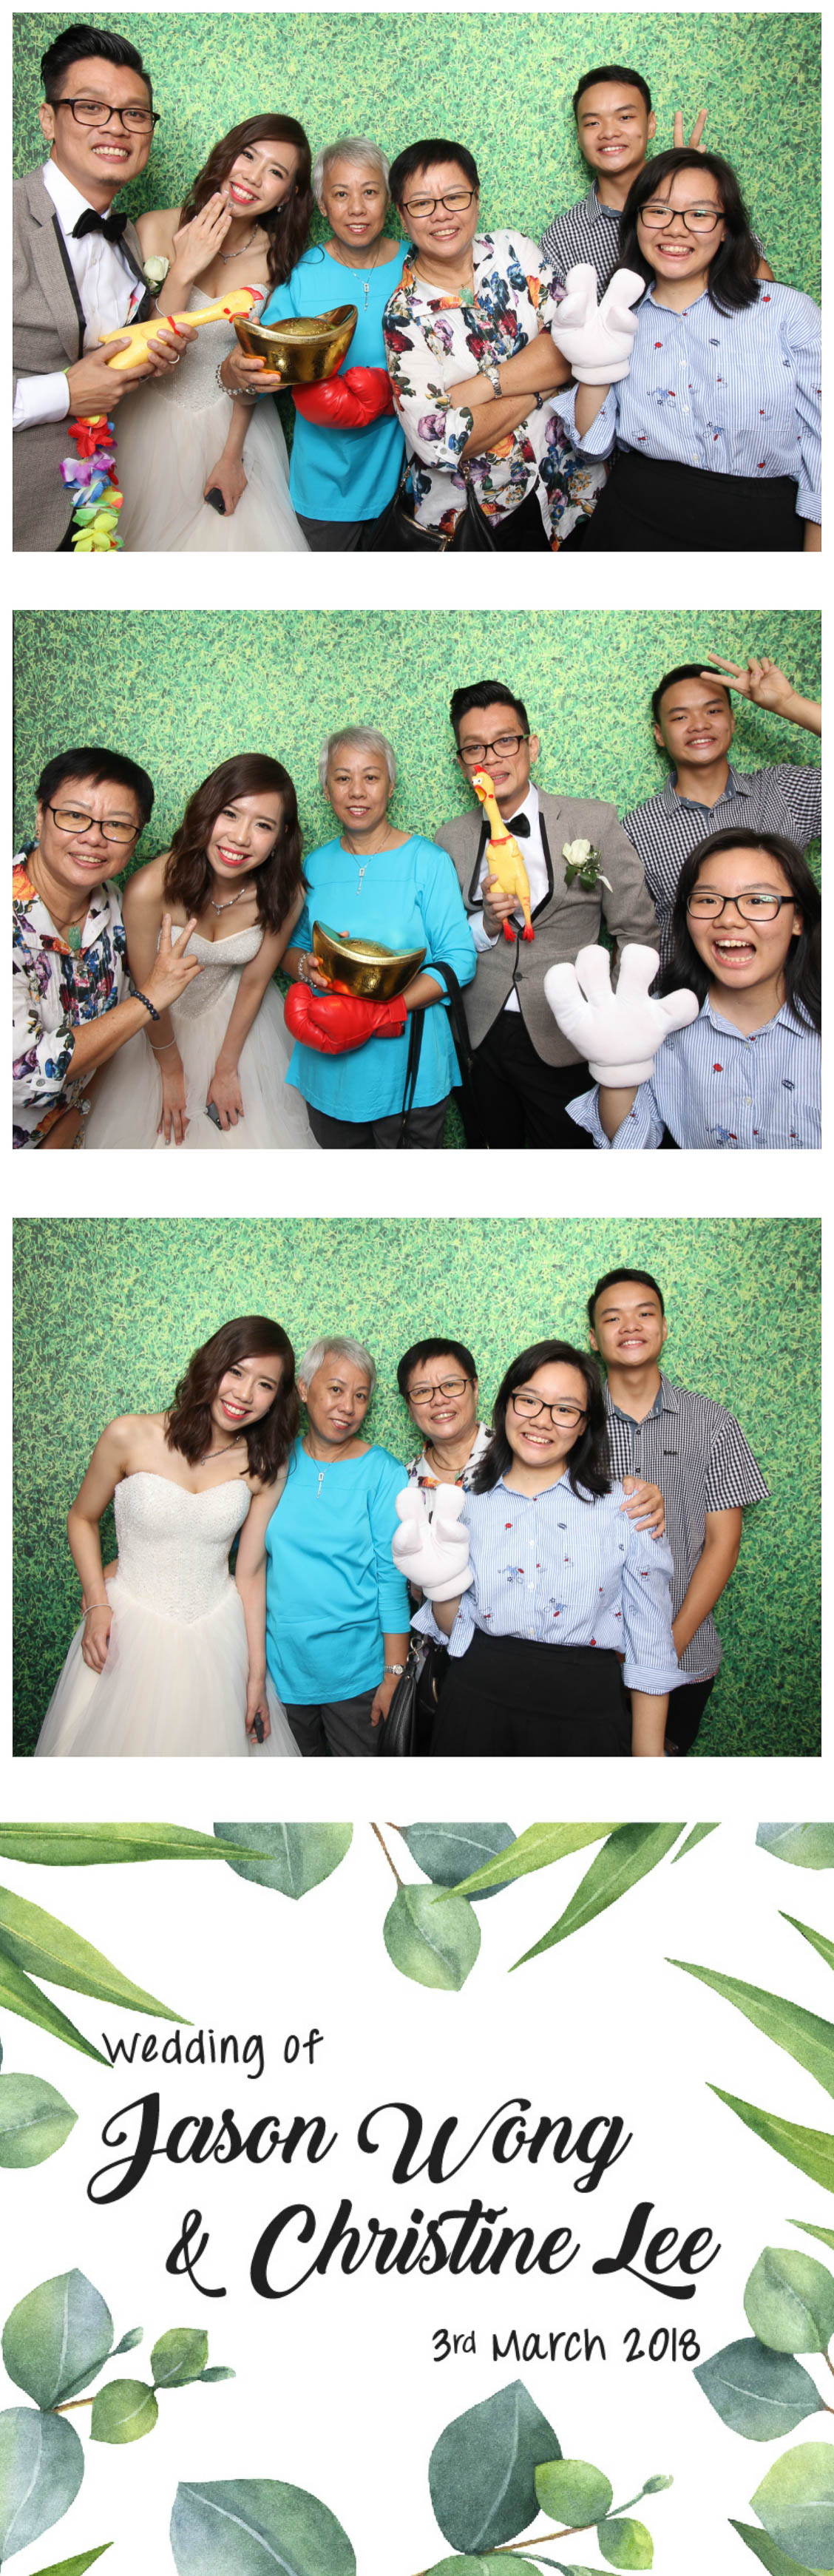 Photobooth 0302-5